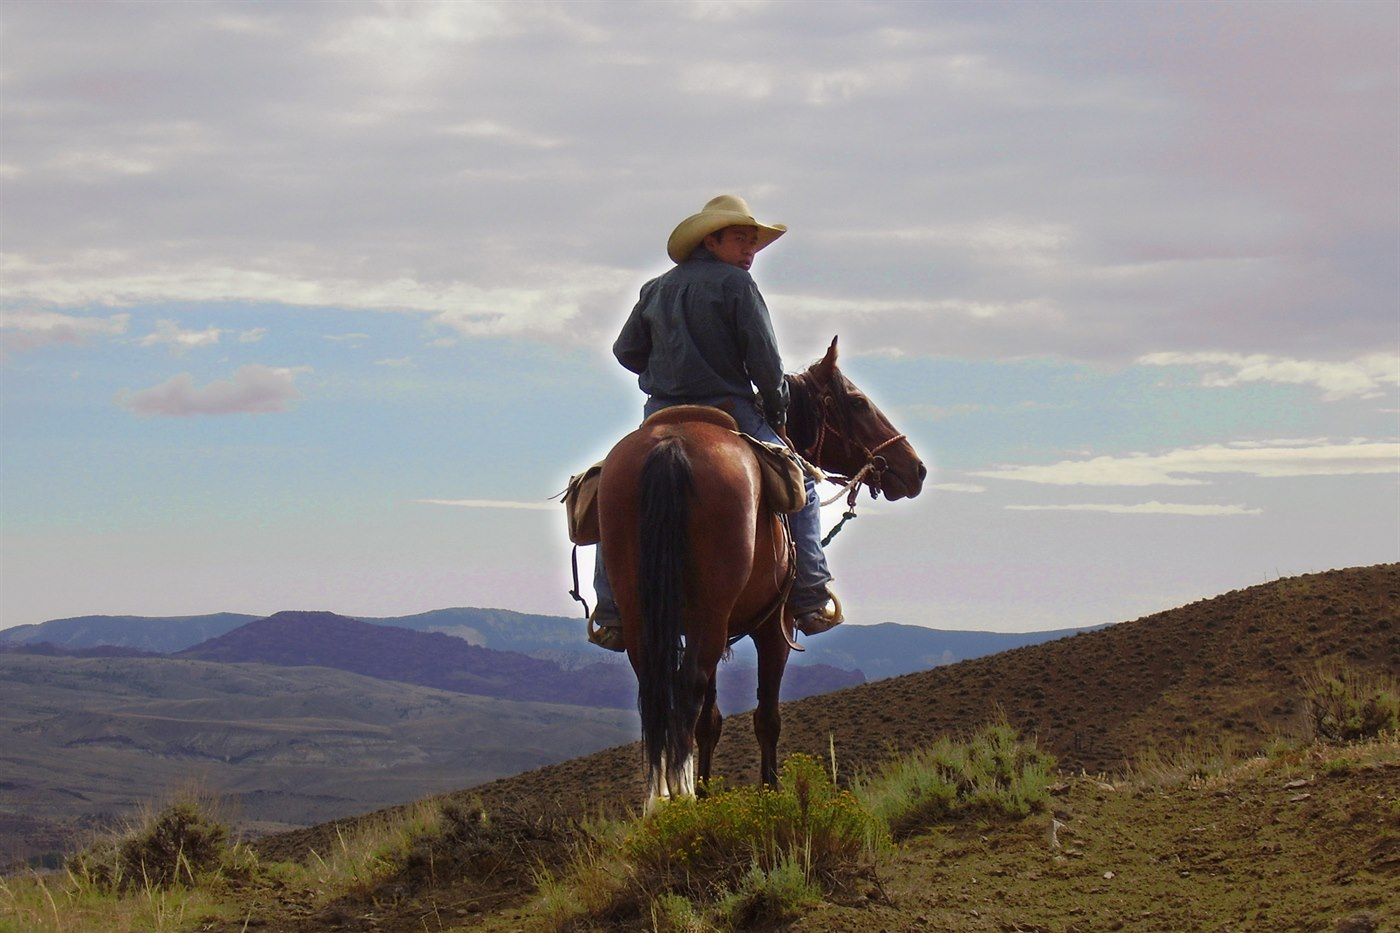 Horse Riding at Rimrock Ranch, Wyoming